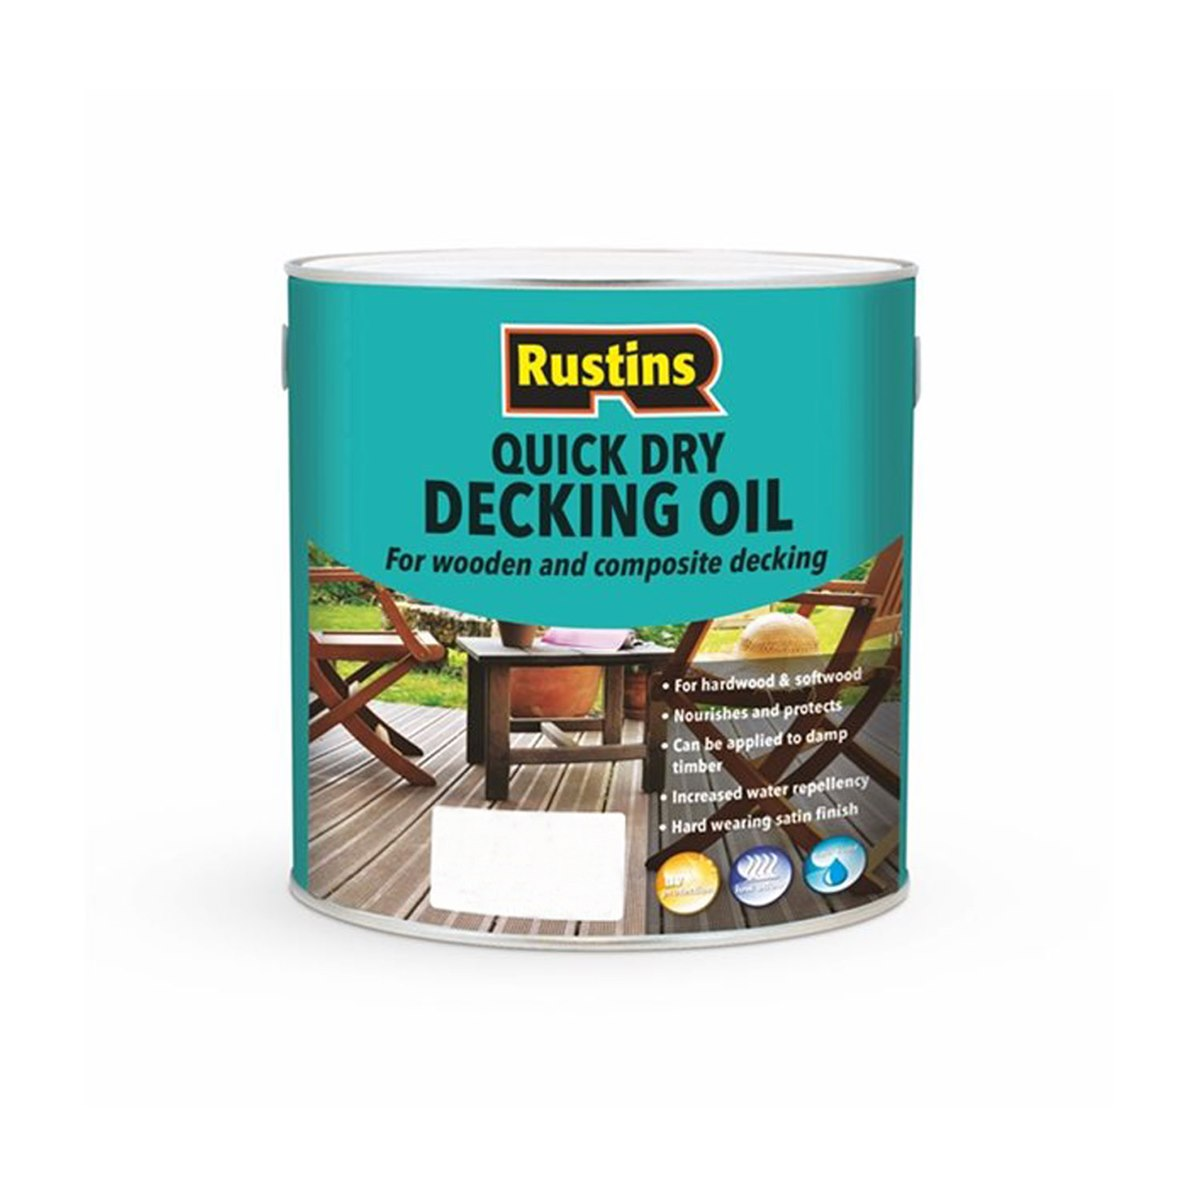 Rustins Quick Dry Decking Oil